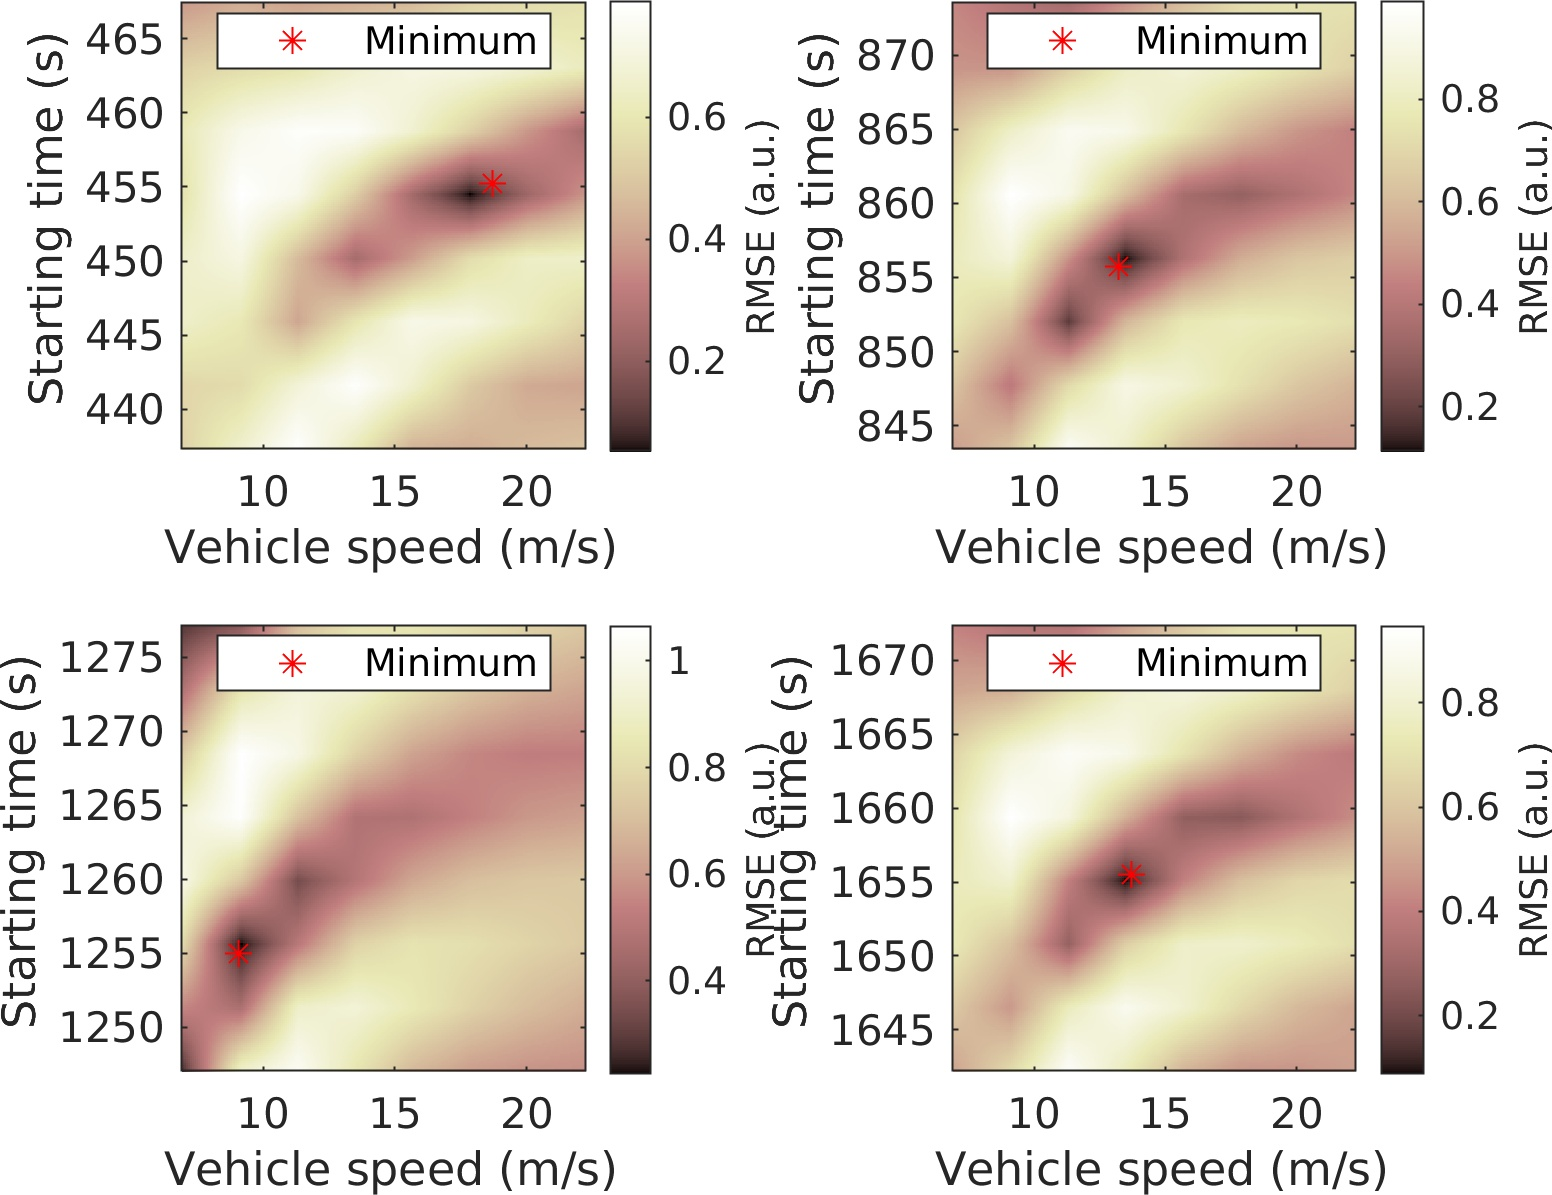 Simultaneous identification of the vehicle speed and arrival time